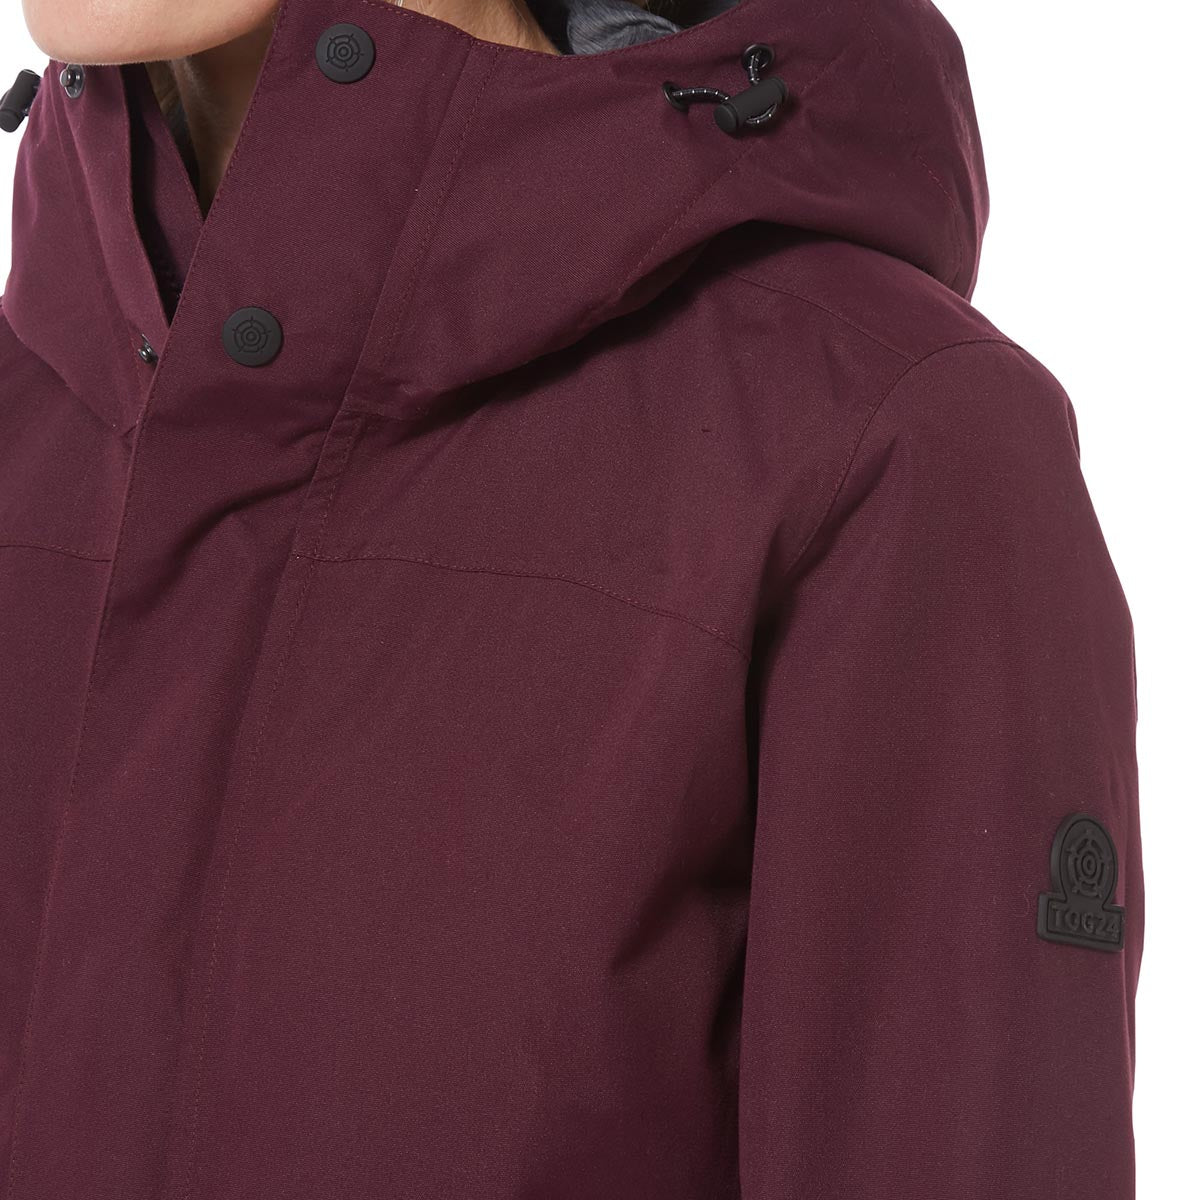 Dawson Womens Waterproof Jacket - Aubergine image 4